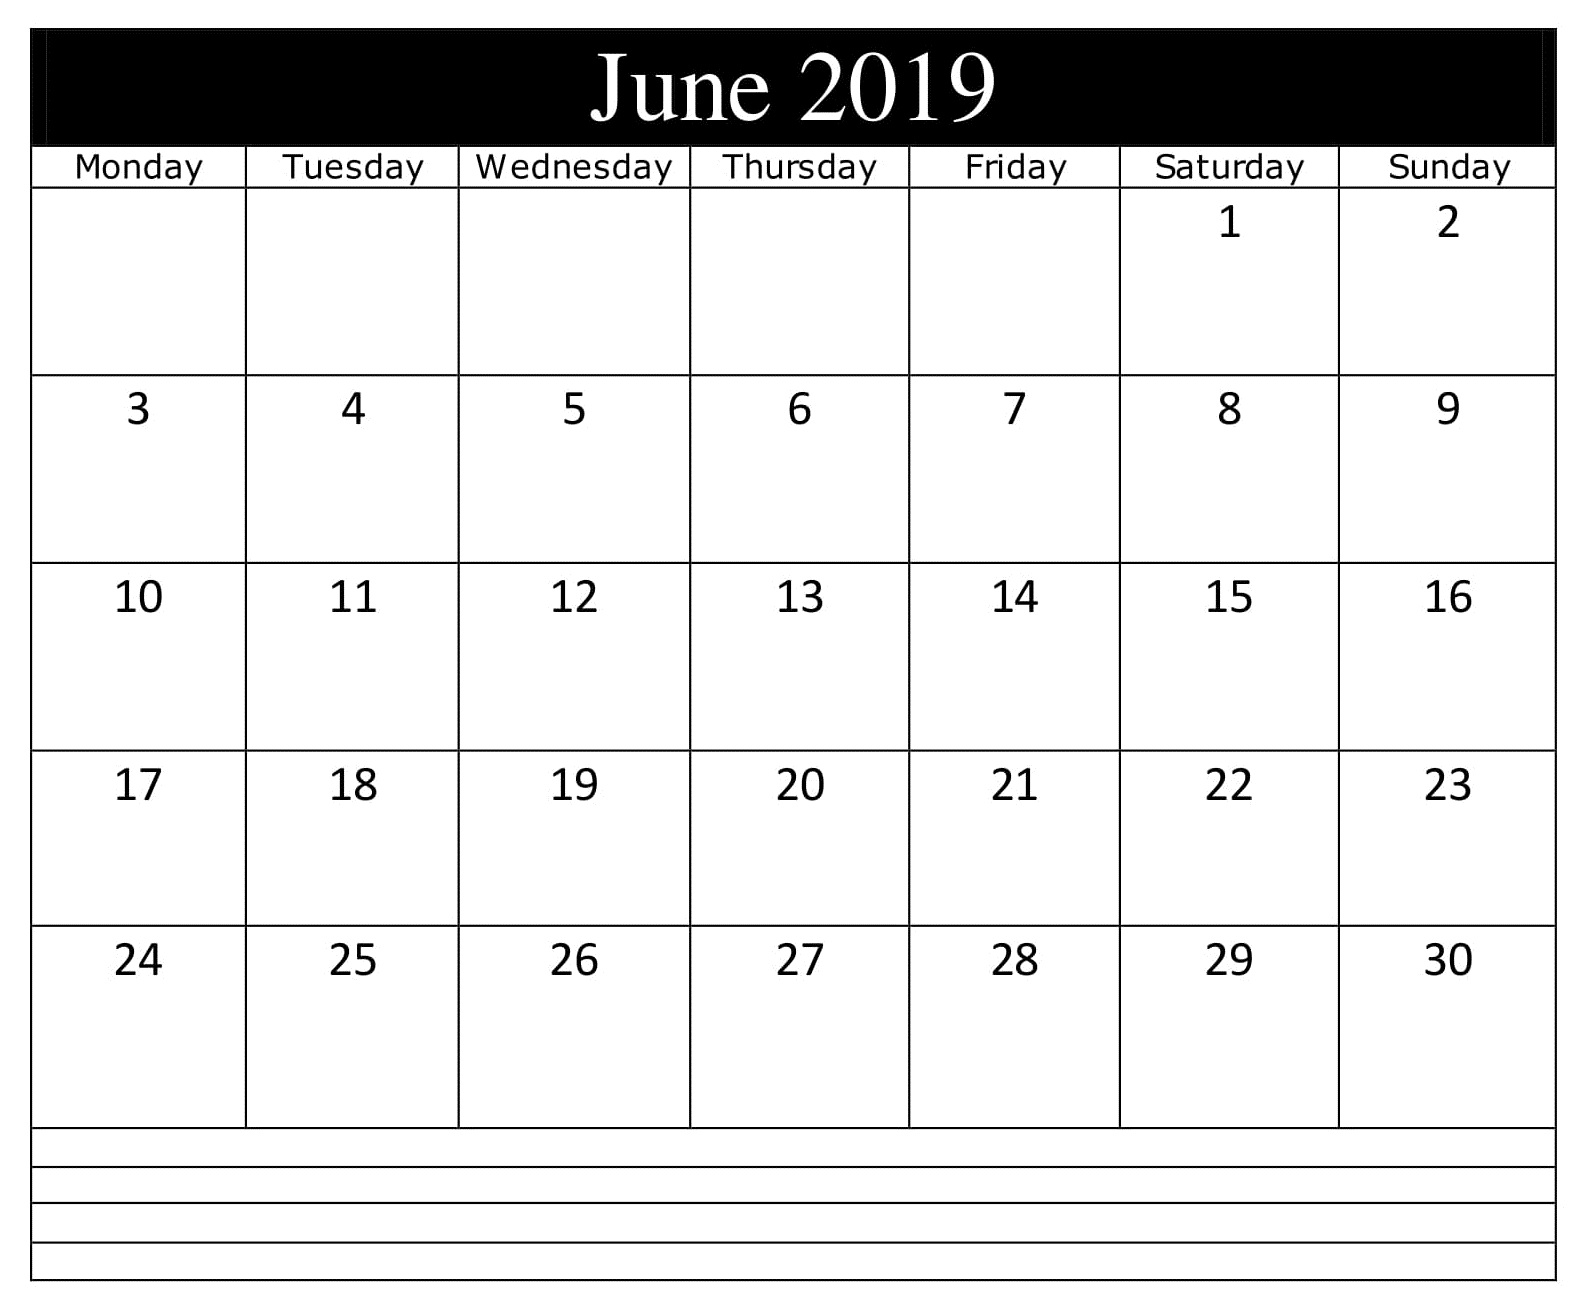 June 2019 Calendar Notes Printable